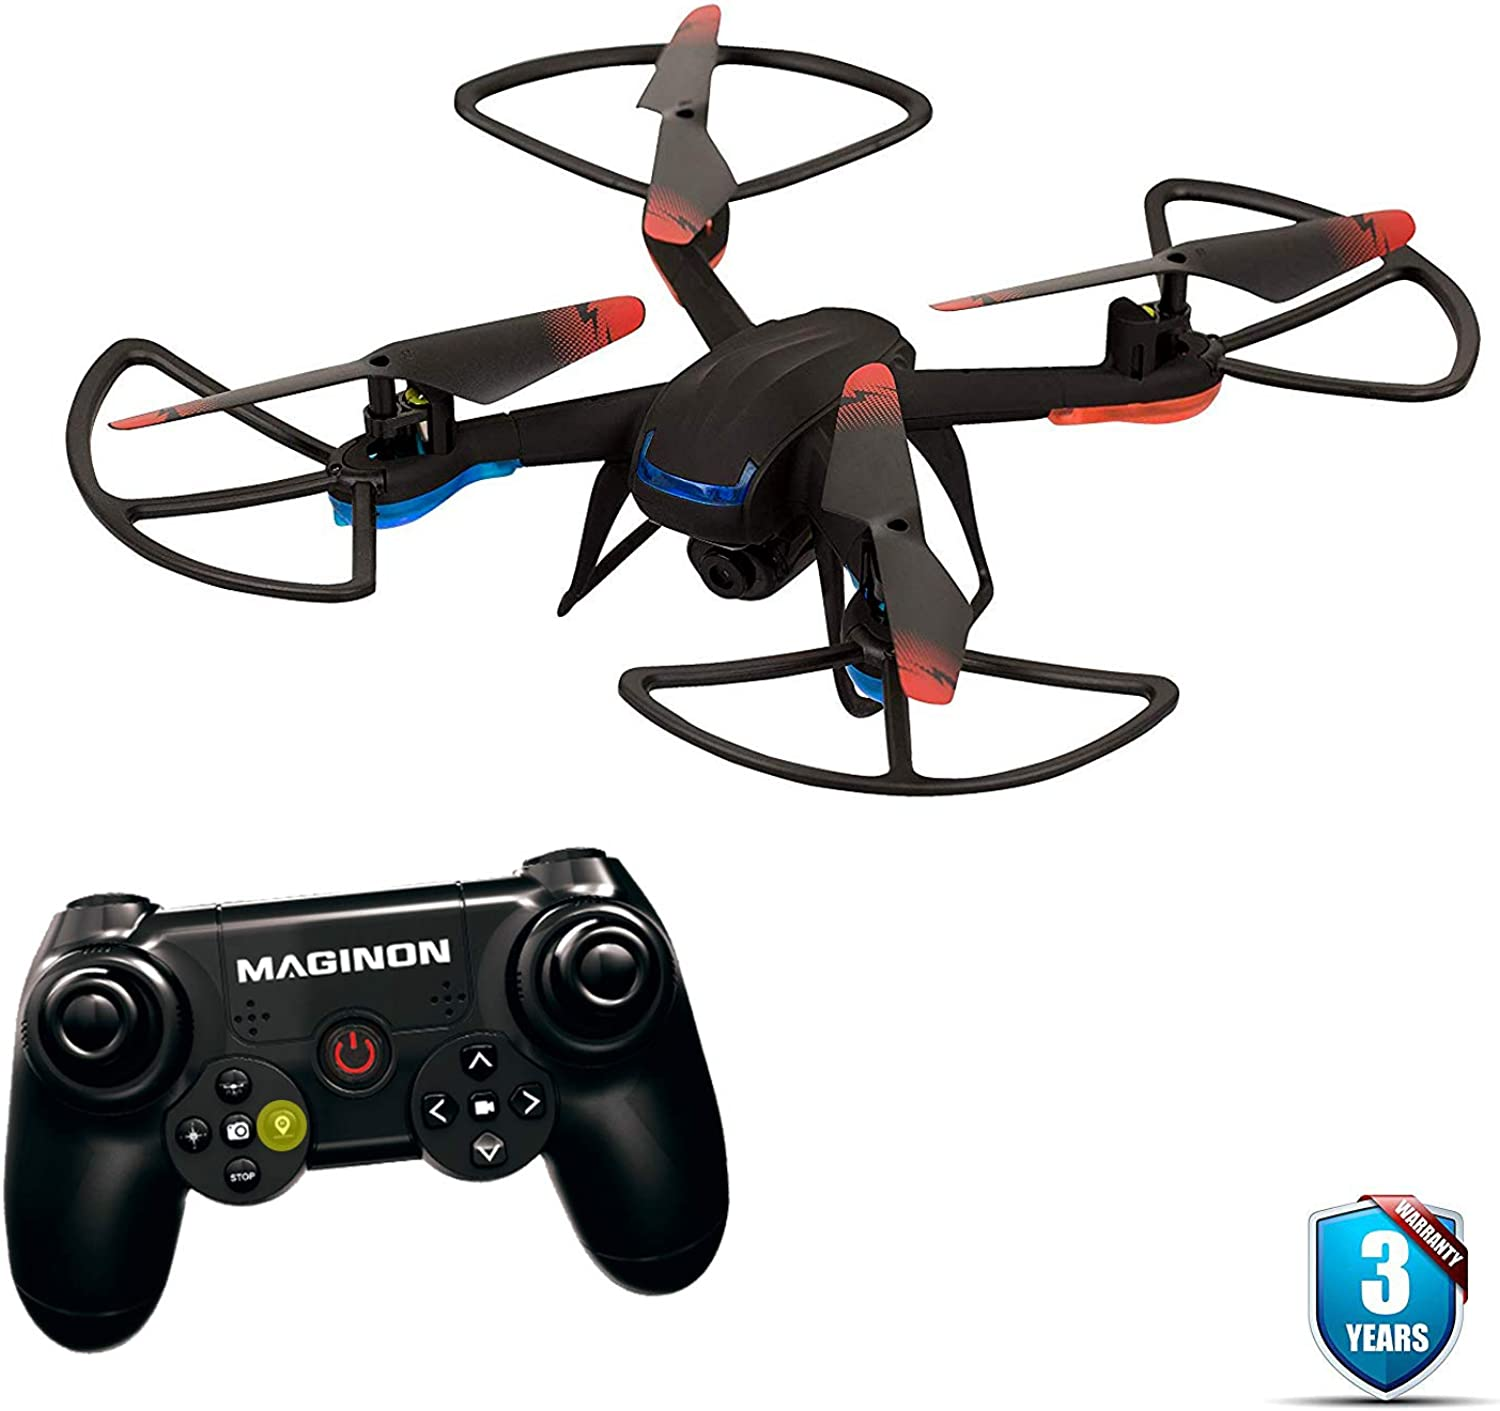 Maginon QC50S RC Quadcopter Drone Capture The Quality with 720P HD Camera and 360° Flip Ability   6Axis Gyroscope for Super Stable Flights   3 Flight Mode for Beginners to Experts